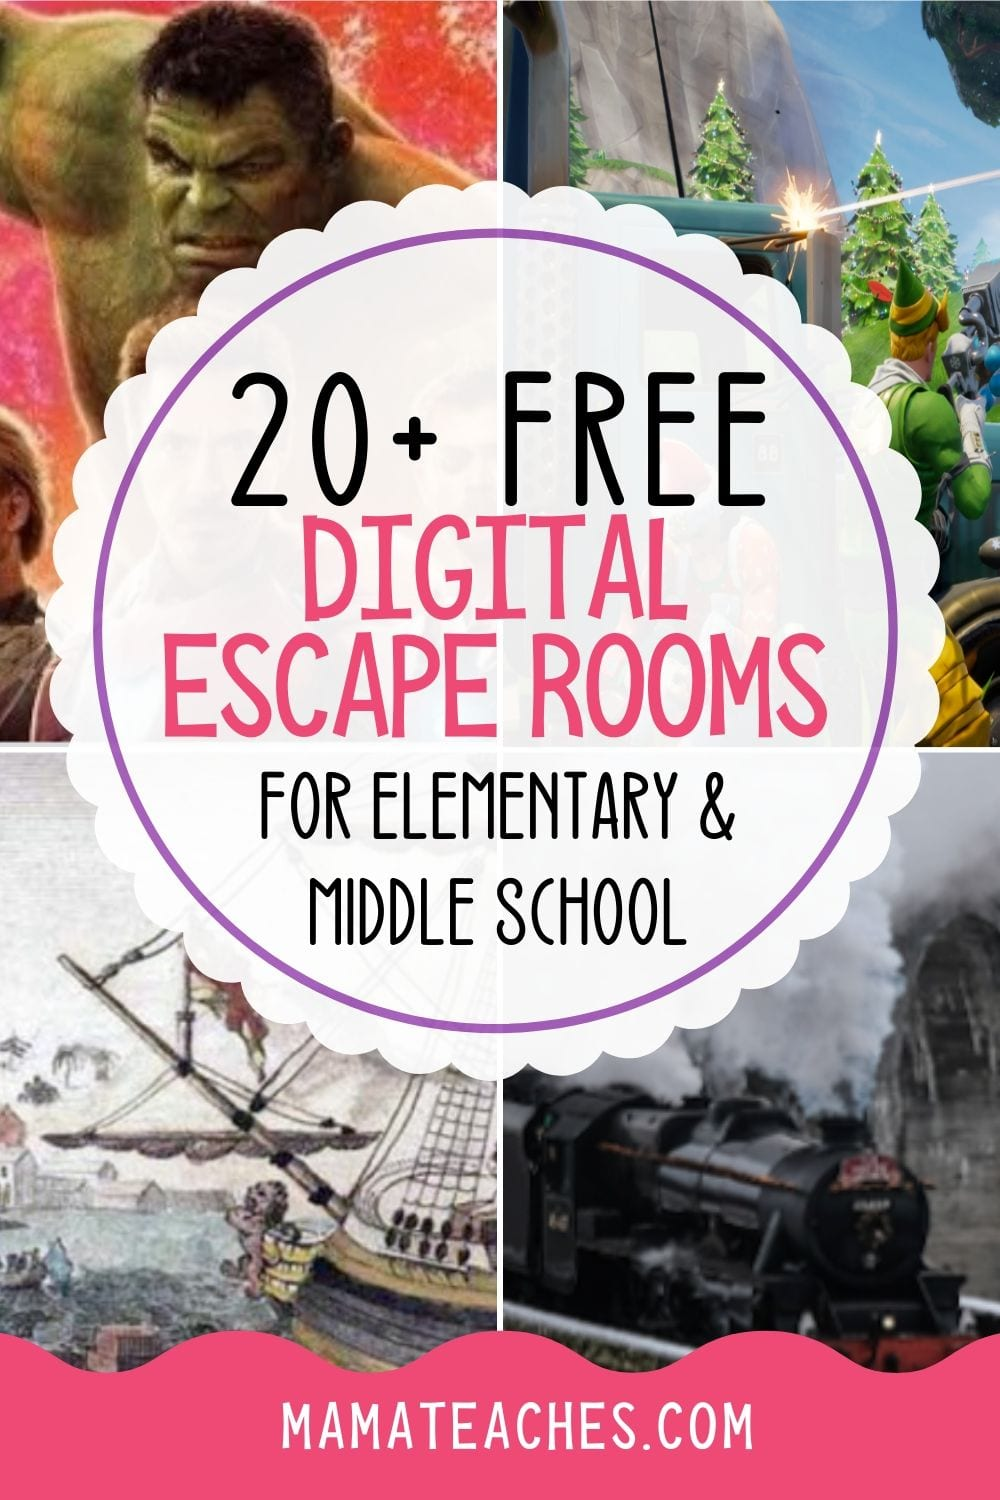 20+ Free Digital Escape Rooms for Elementary and Middle School - MamaTeaches.com